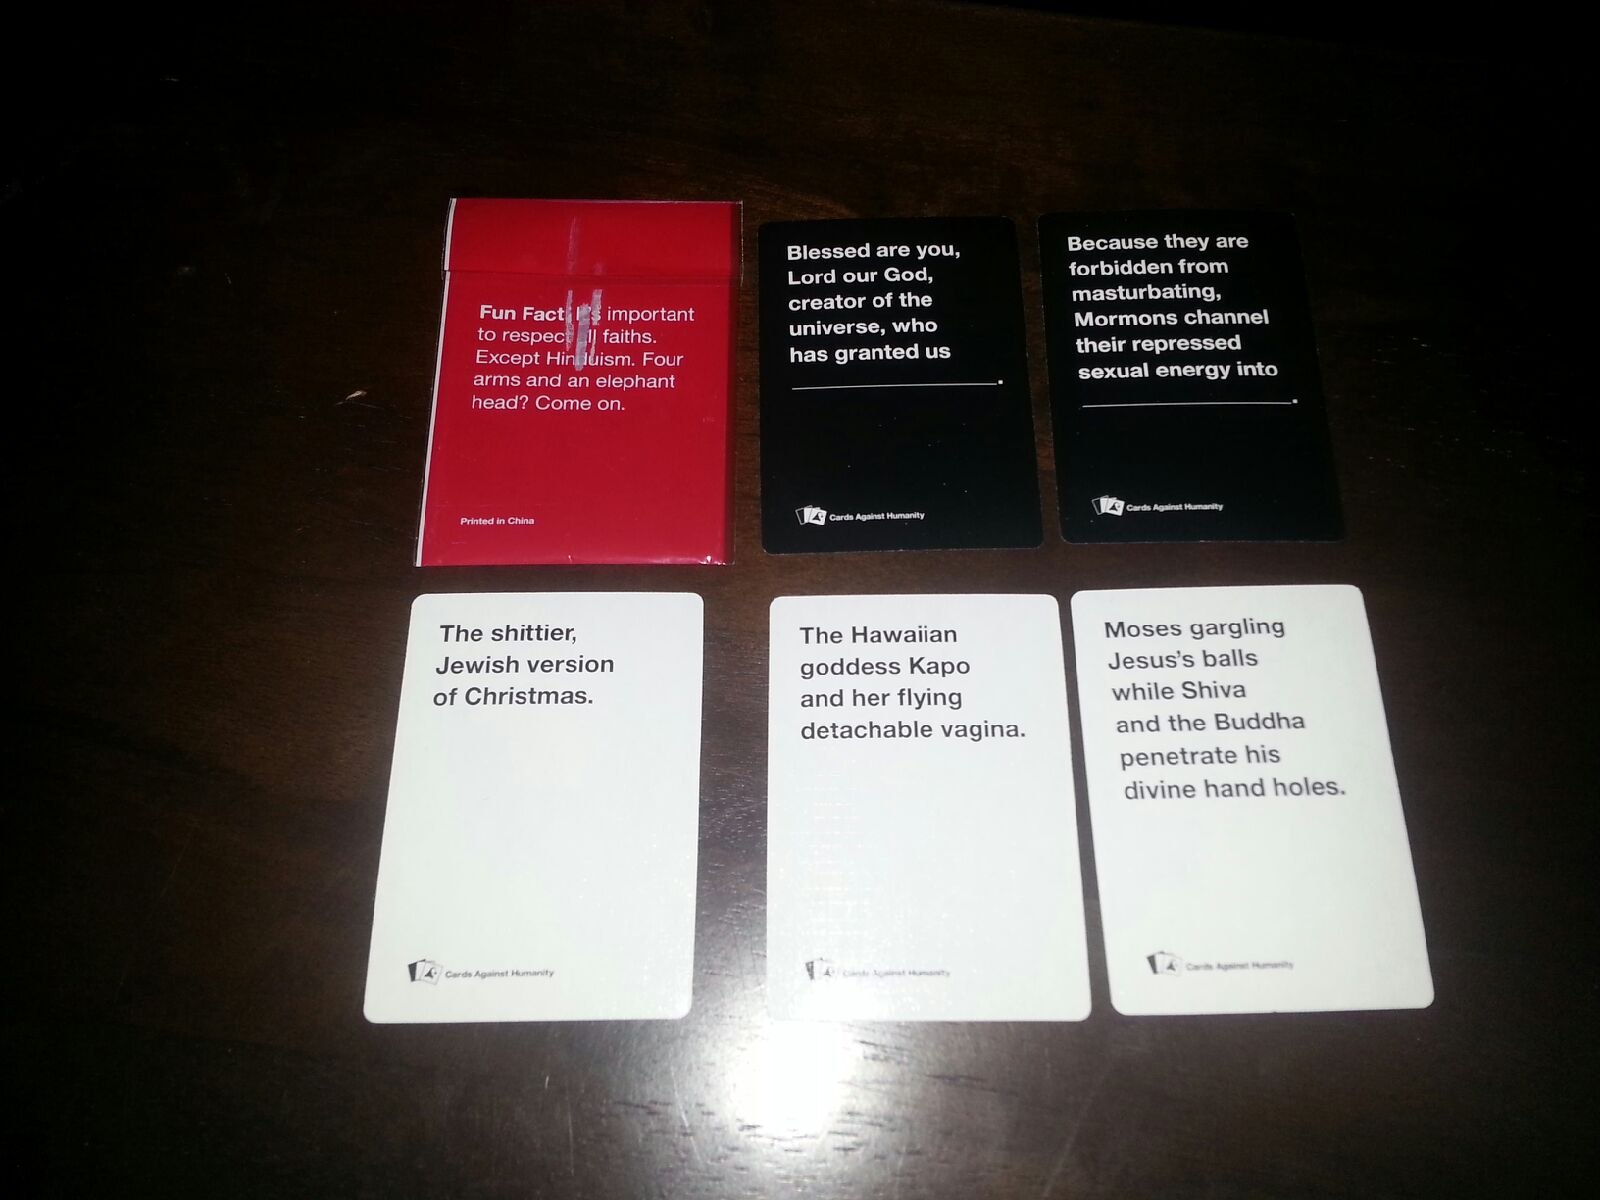 On the third day of Christmas, Cards Against Humanity gave ...